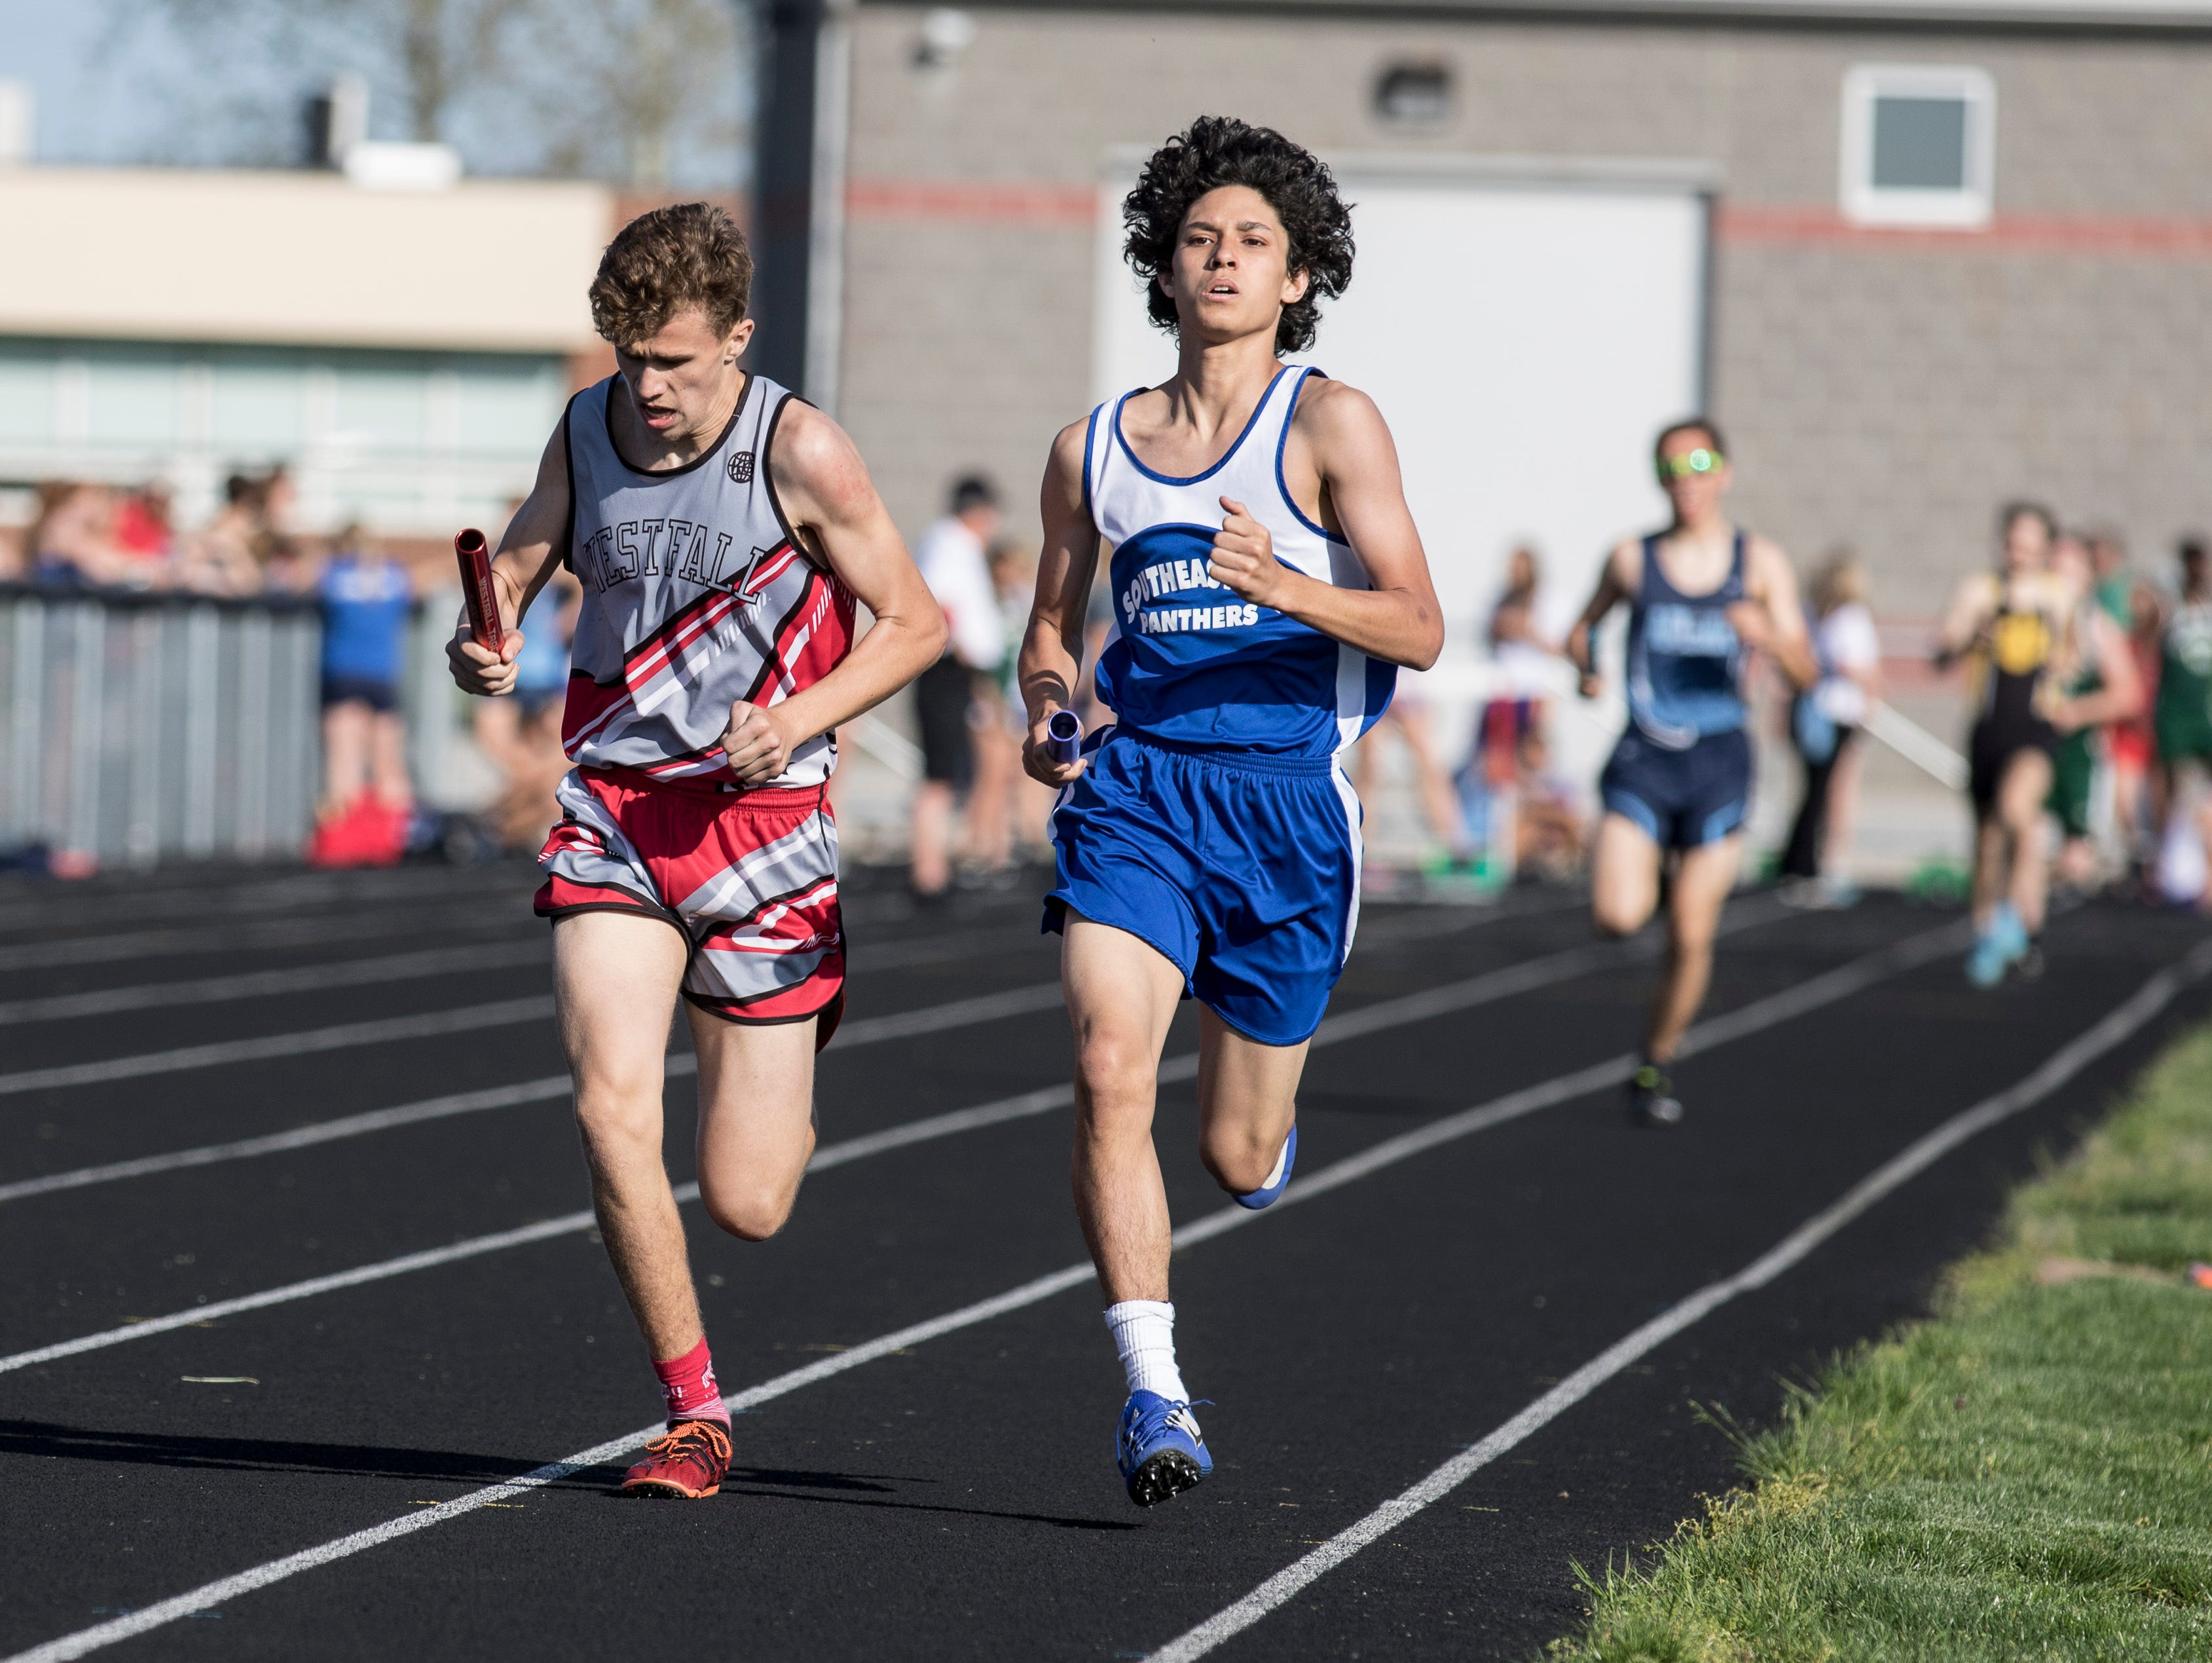 Westfall High School hosted day one of the 2019 SVC Track and Field Championships on Monday, May 6, 2019.